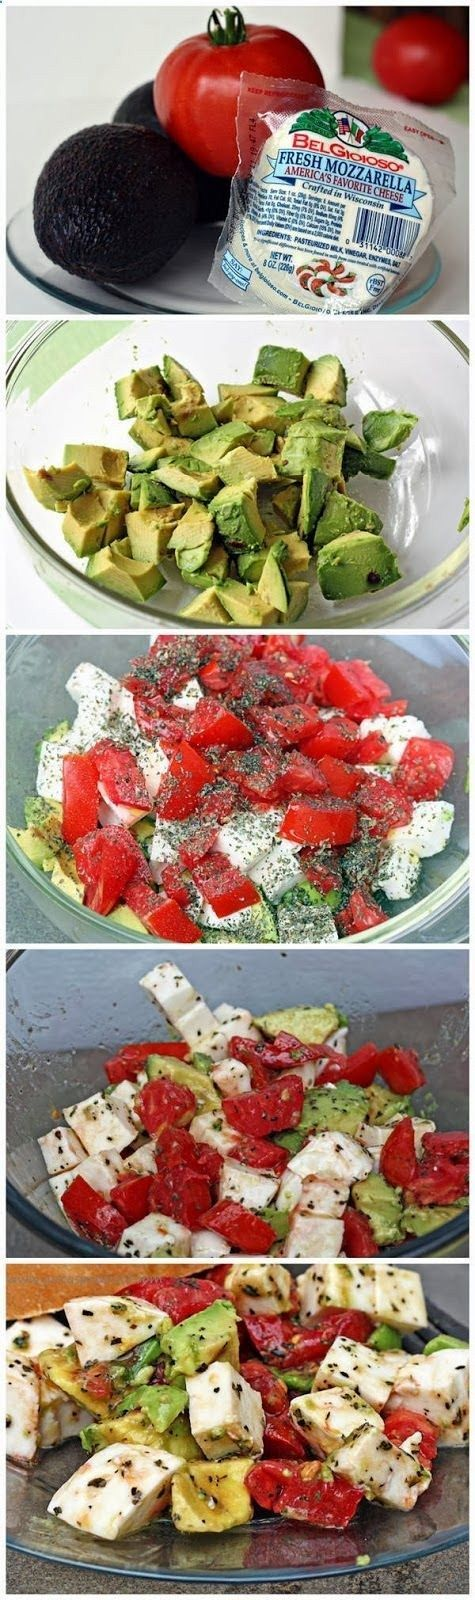 Mozzerella Tomato Avocado Salad with Basil and Balsamic Vinaigrette: